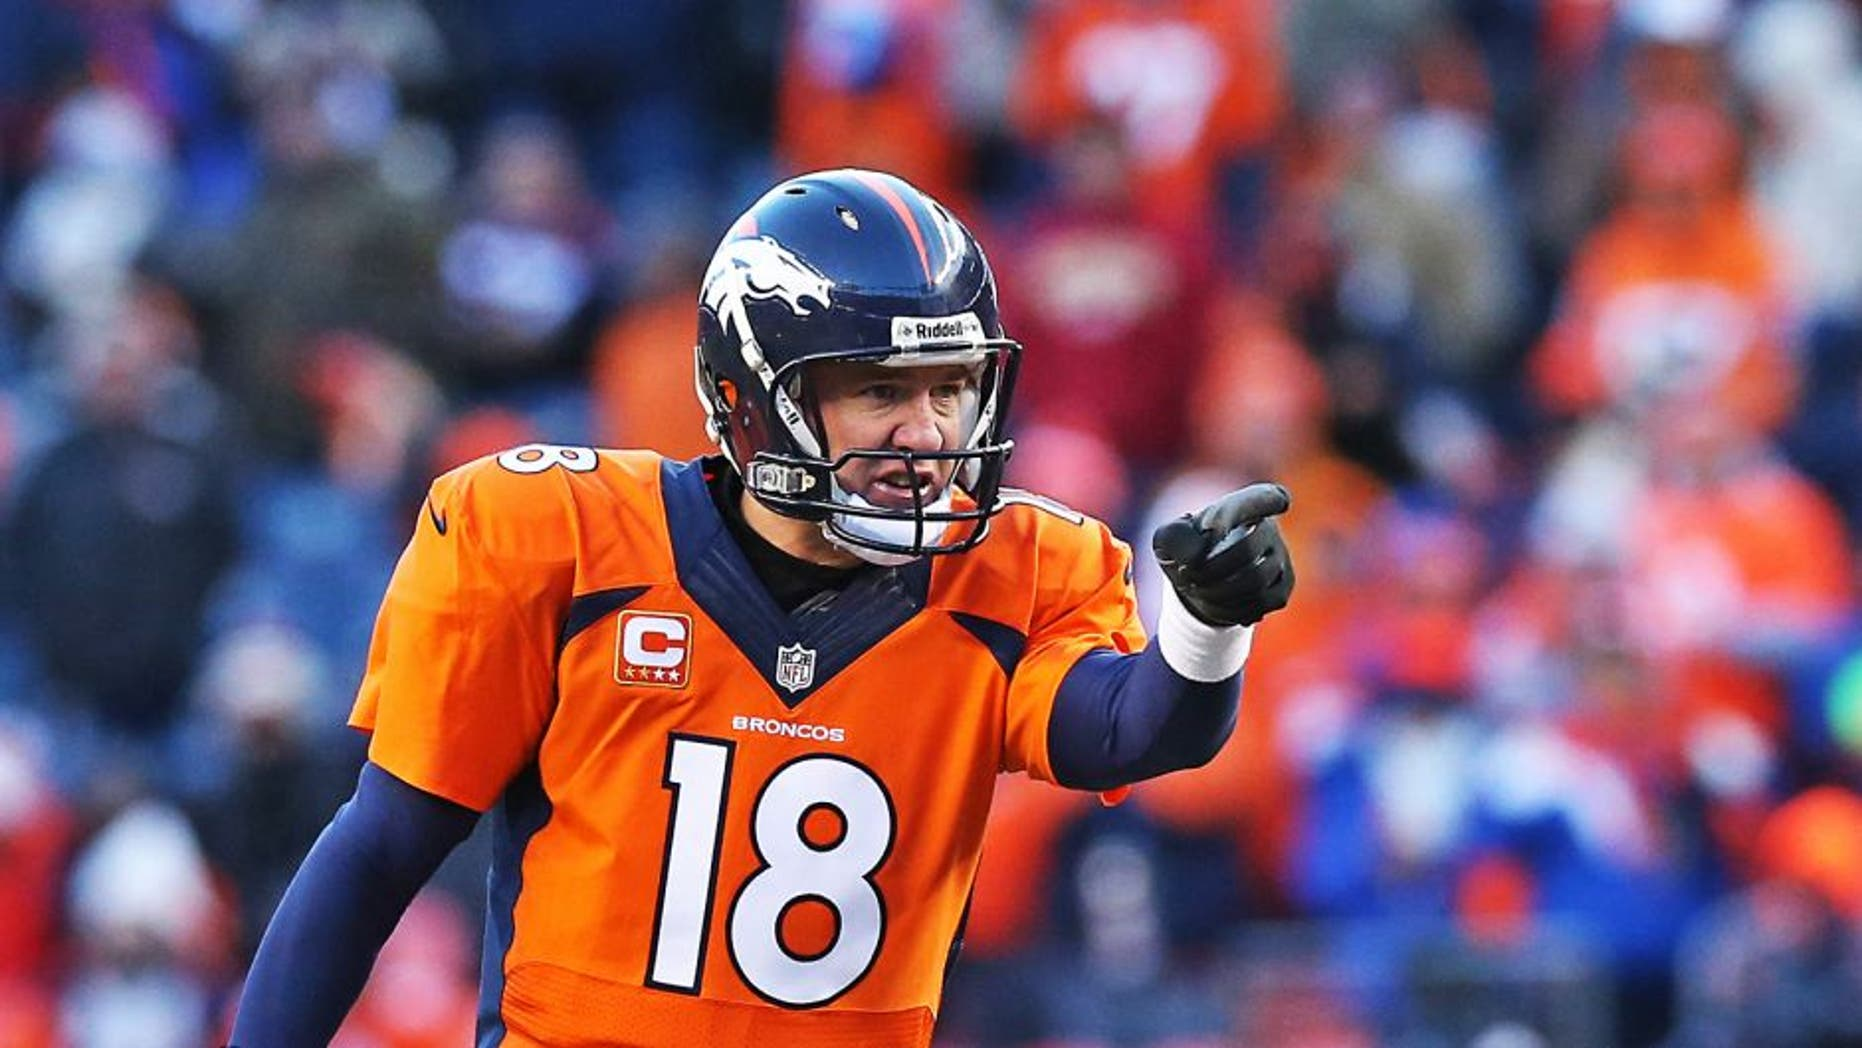 Jan 12, 2014; Denver, CO, USA; Denver Broncos quarterback Peyton Manning (18) points and signals prior to the snap against the San Diego Chargers during the 2013 AFC divisional playoff football game at Sports Authority Field at Mile High. Mandatory Credit: Matthew Emmons-USA TODAY Sports